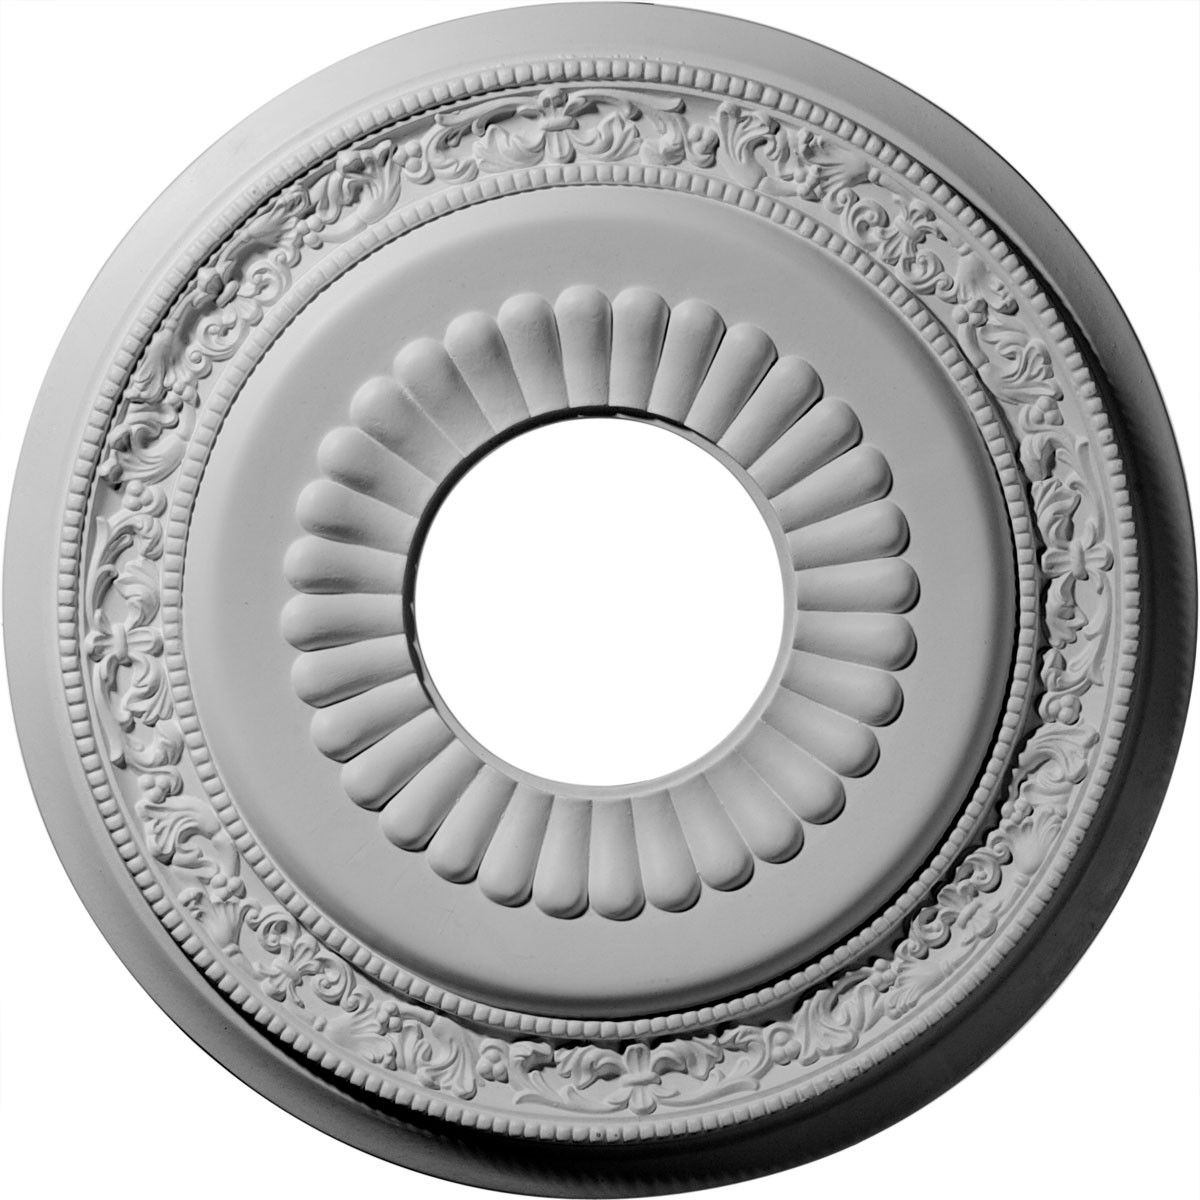 "EM-CM20LN - 20 5/8""OD x 6 1/4""ID x 1 3/8""P Lauren Ceiling Medallion (Fits Canopies up to 6 1/4"")"